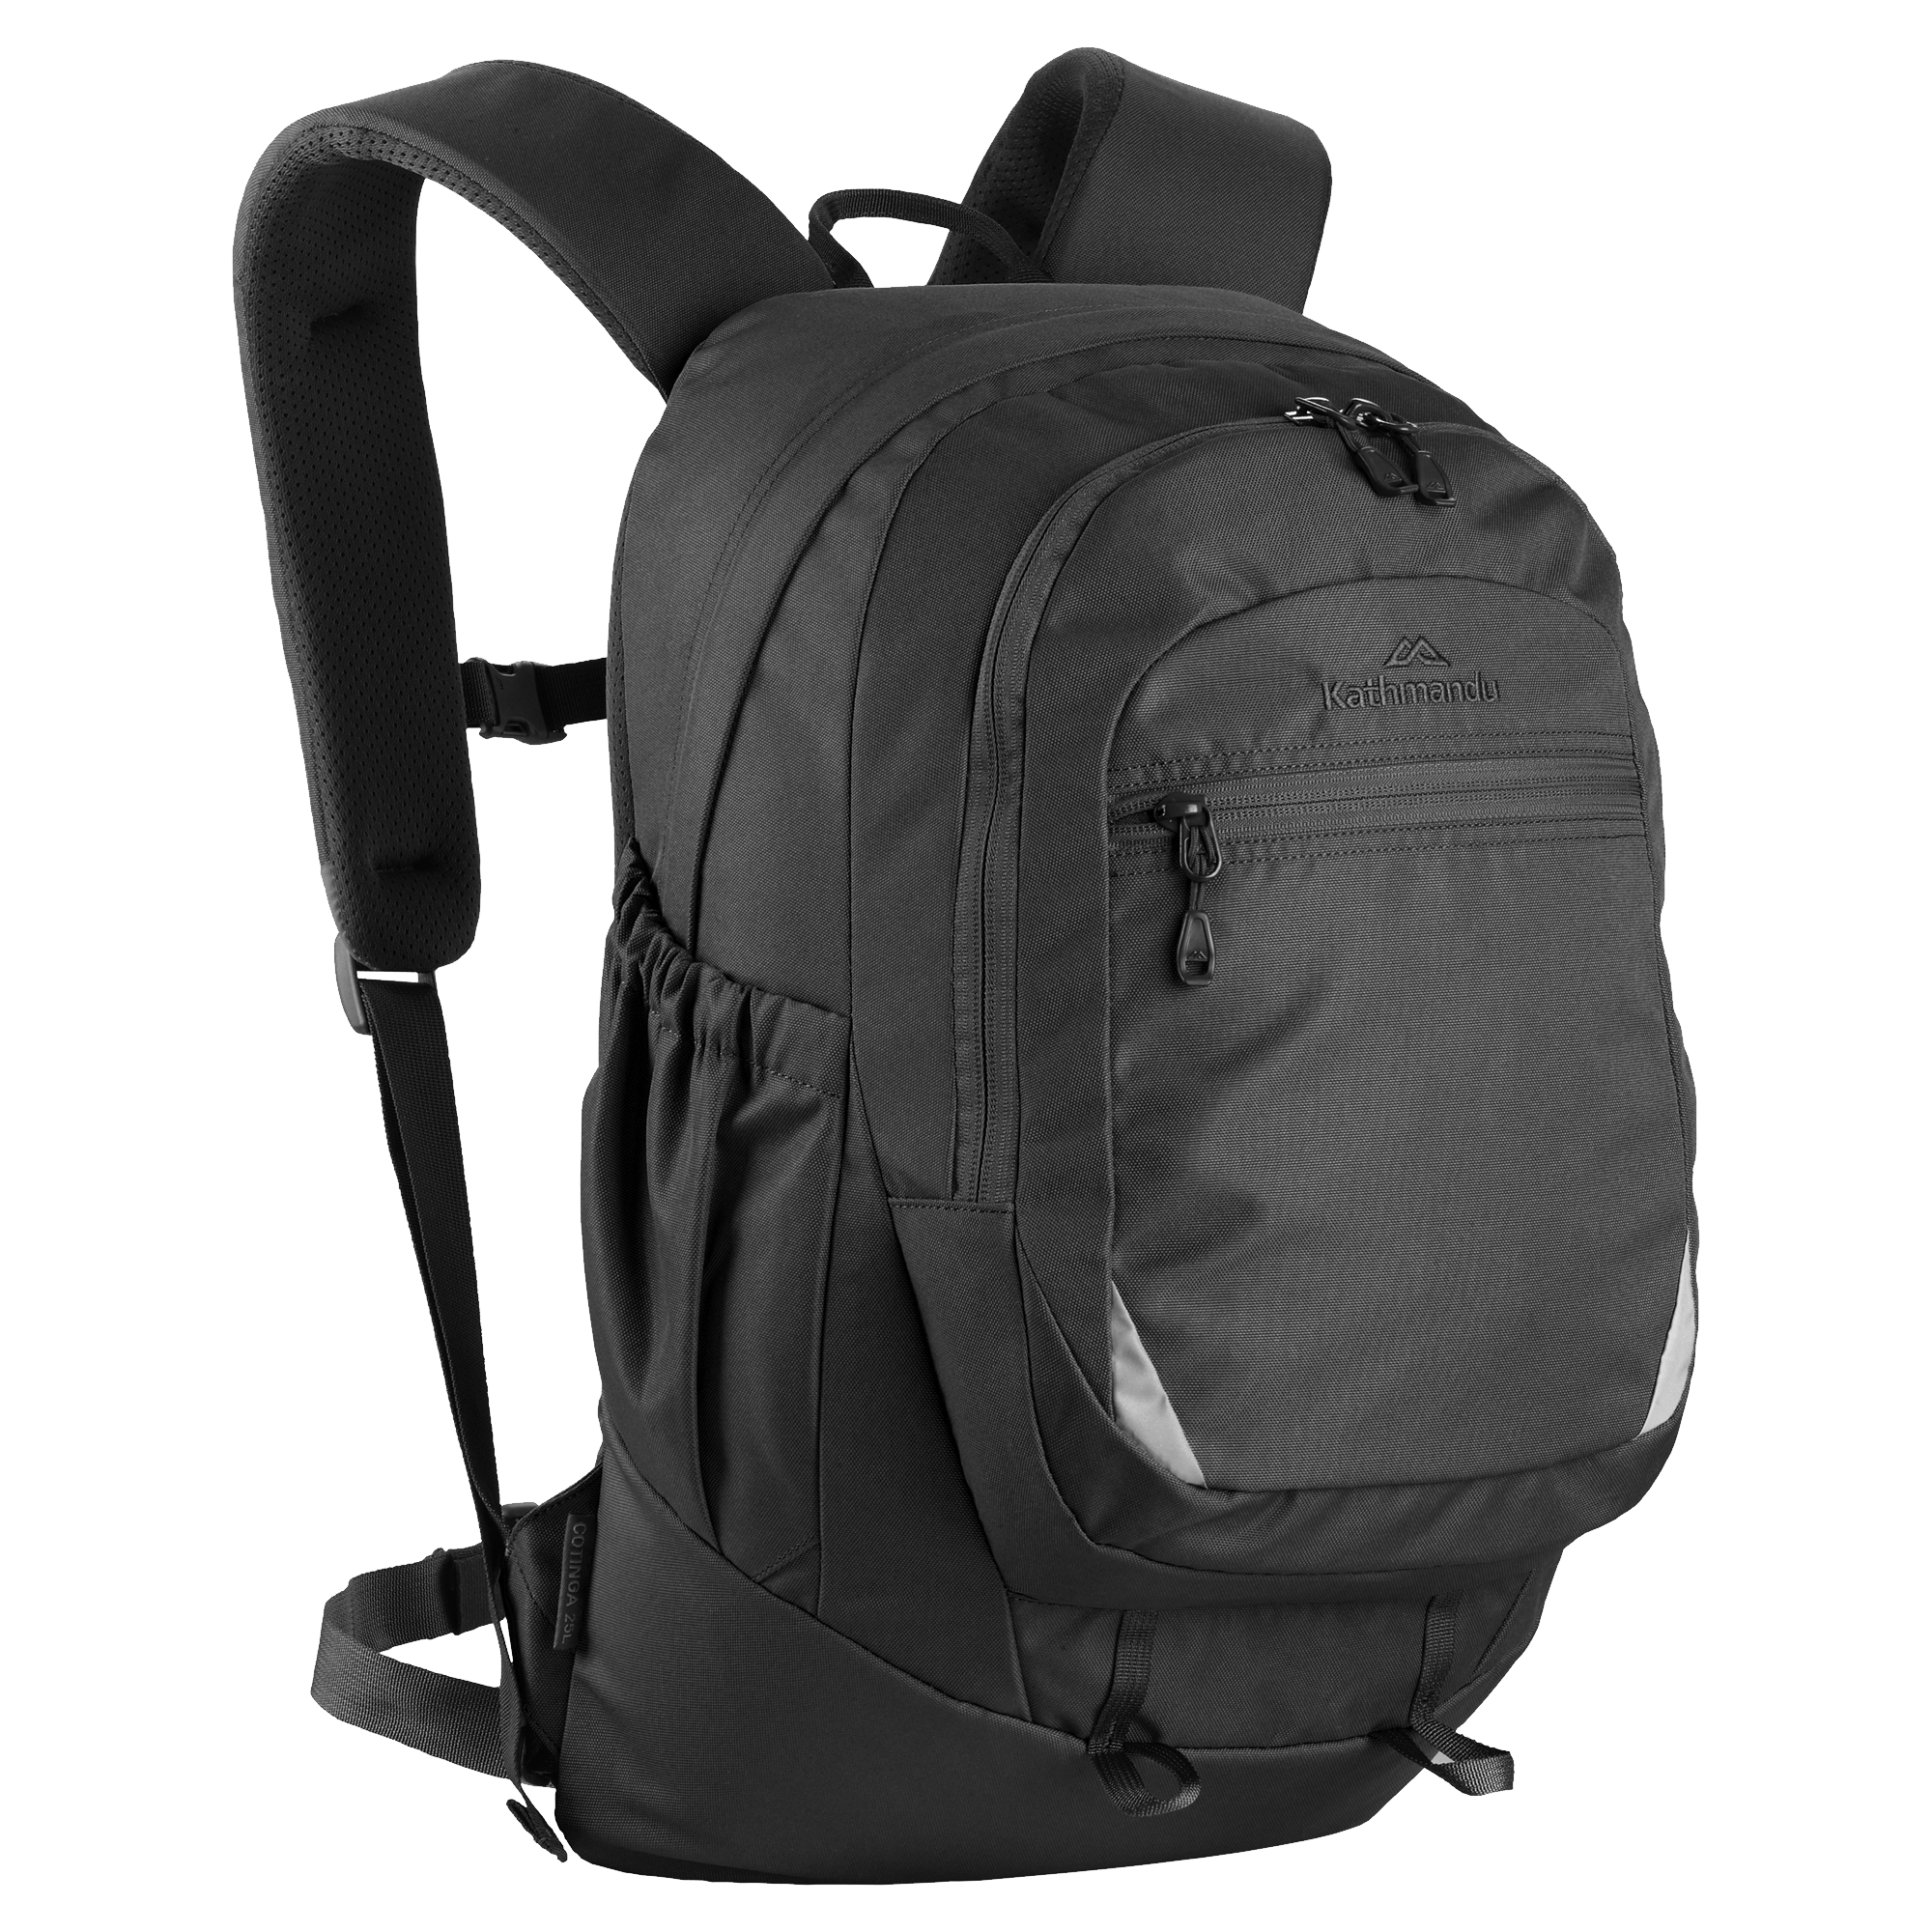 Backpack transparent png. Kathmandu black stickpng